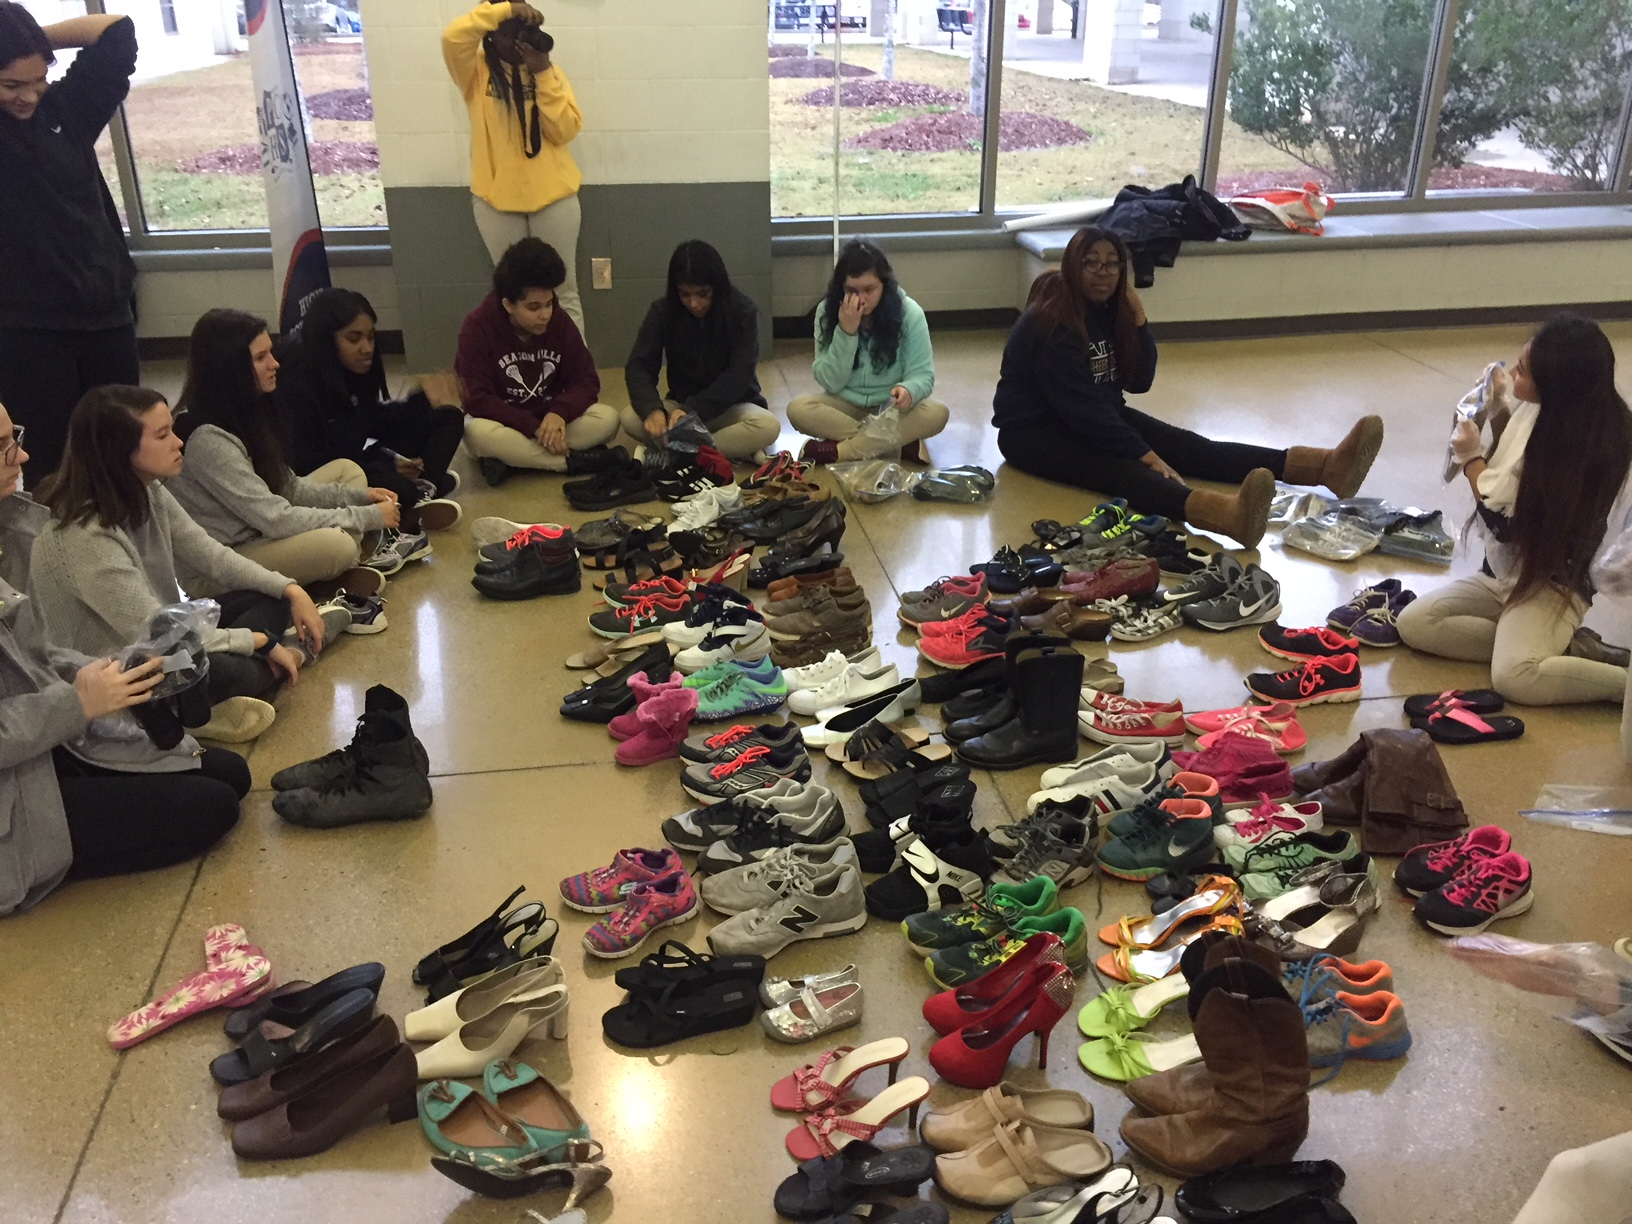 Images of Shoes of Service